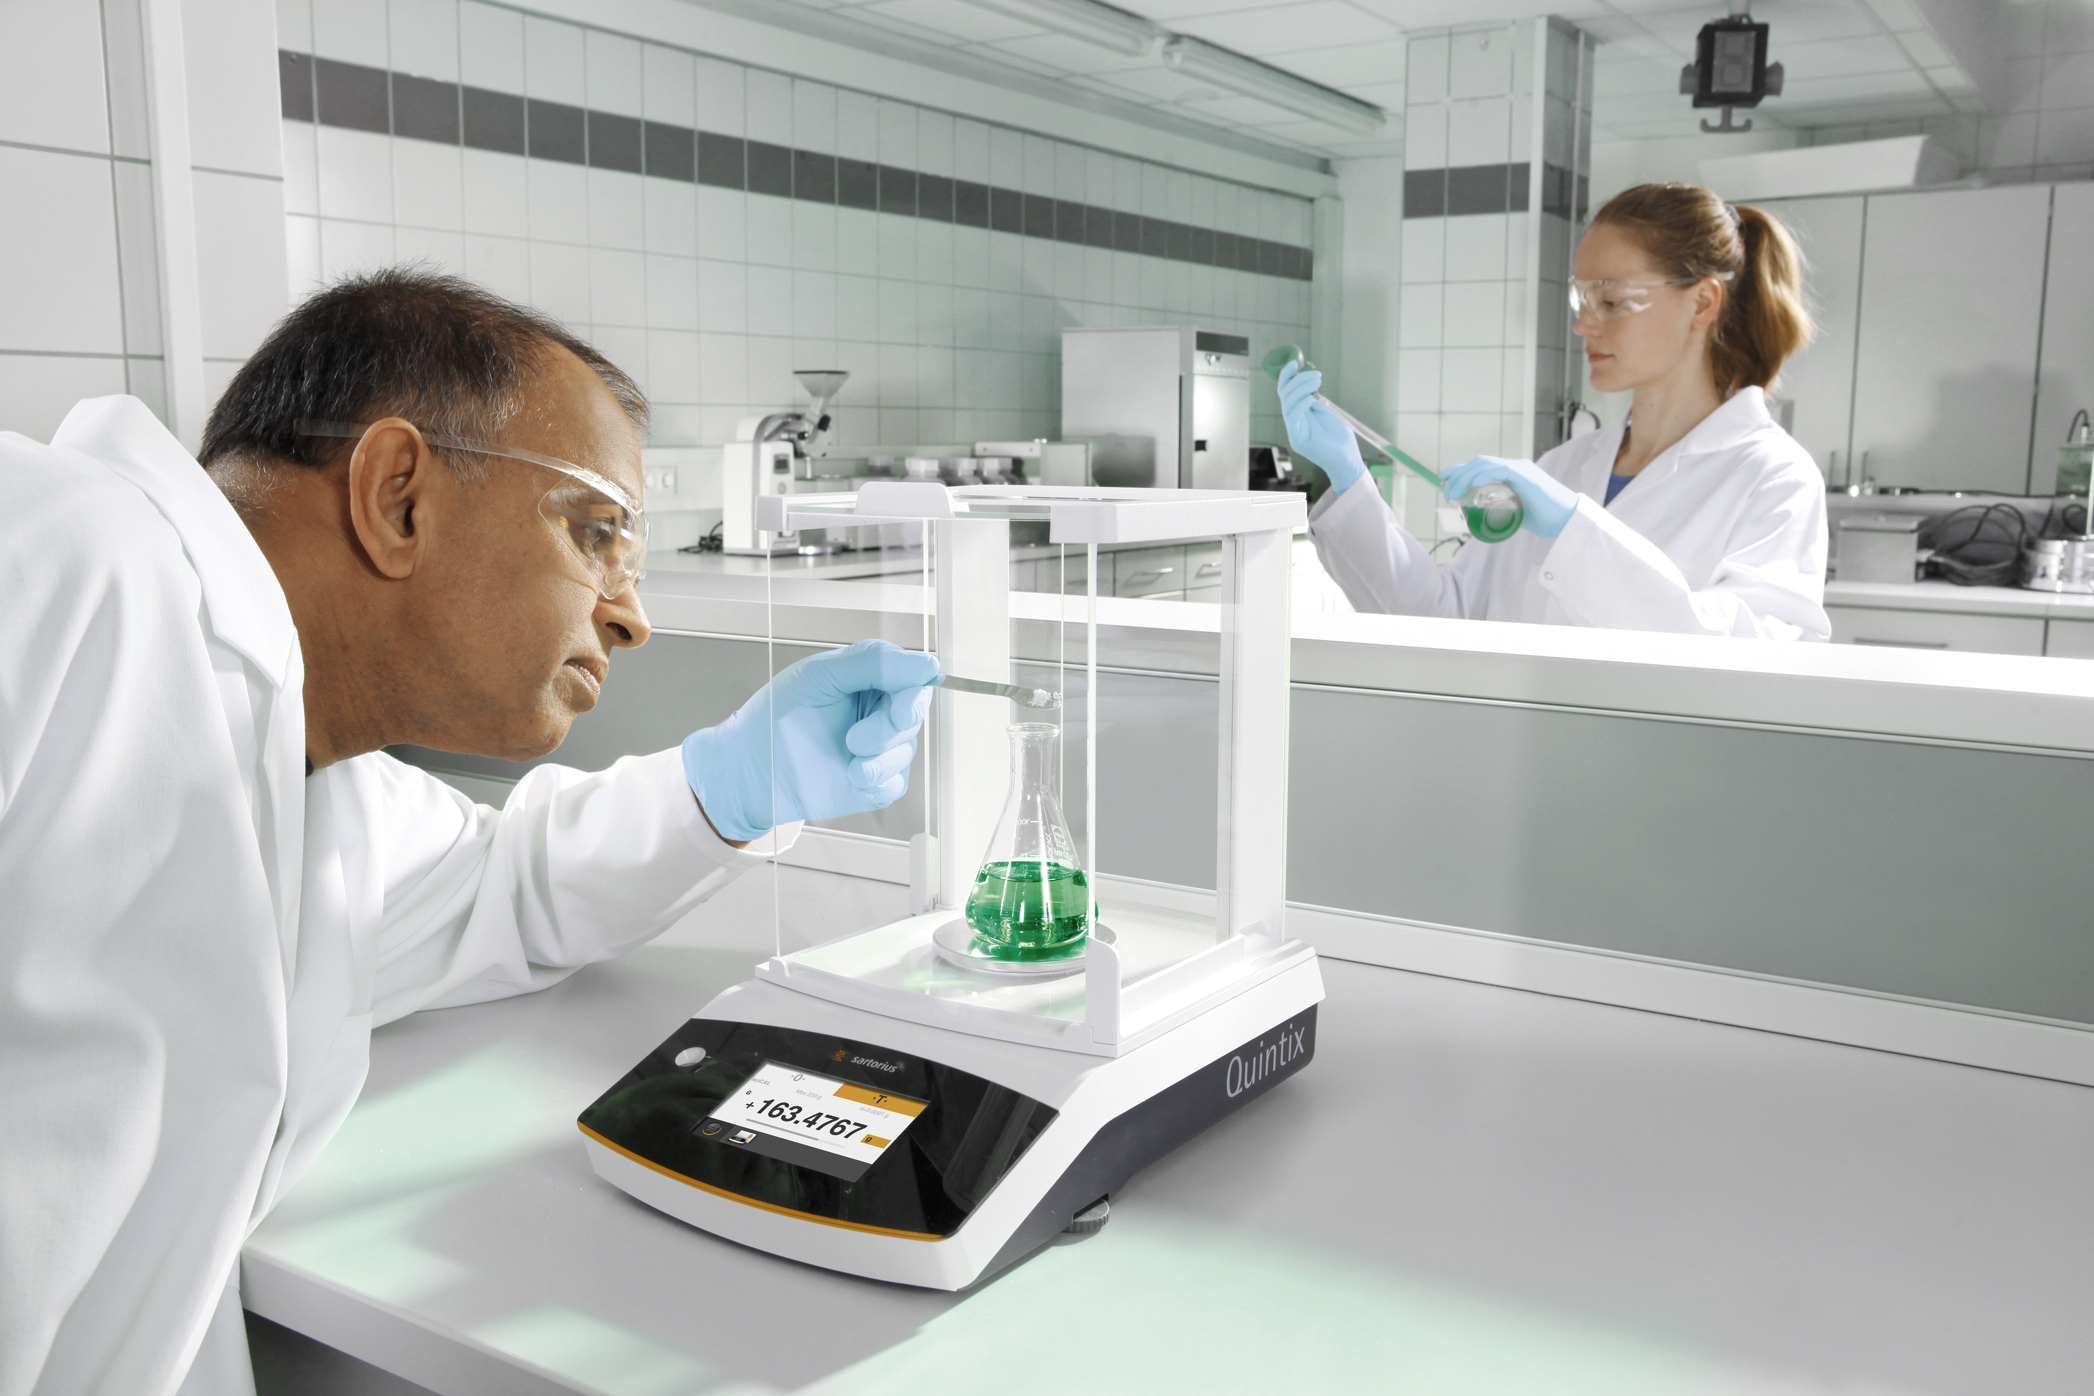 The Sartorius Quintix can guarantee the highest metrological quality and reliability of its weighing results